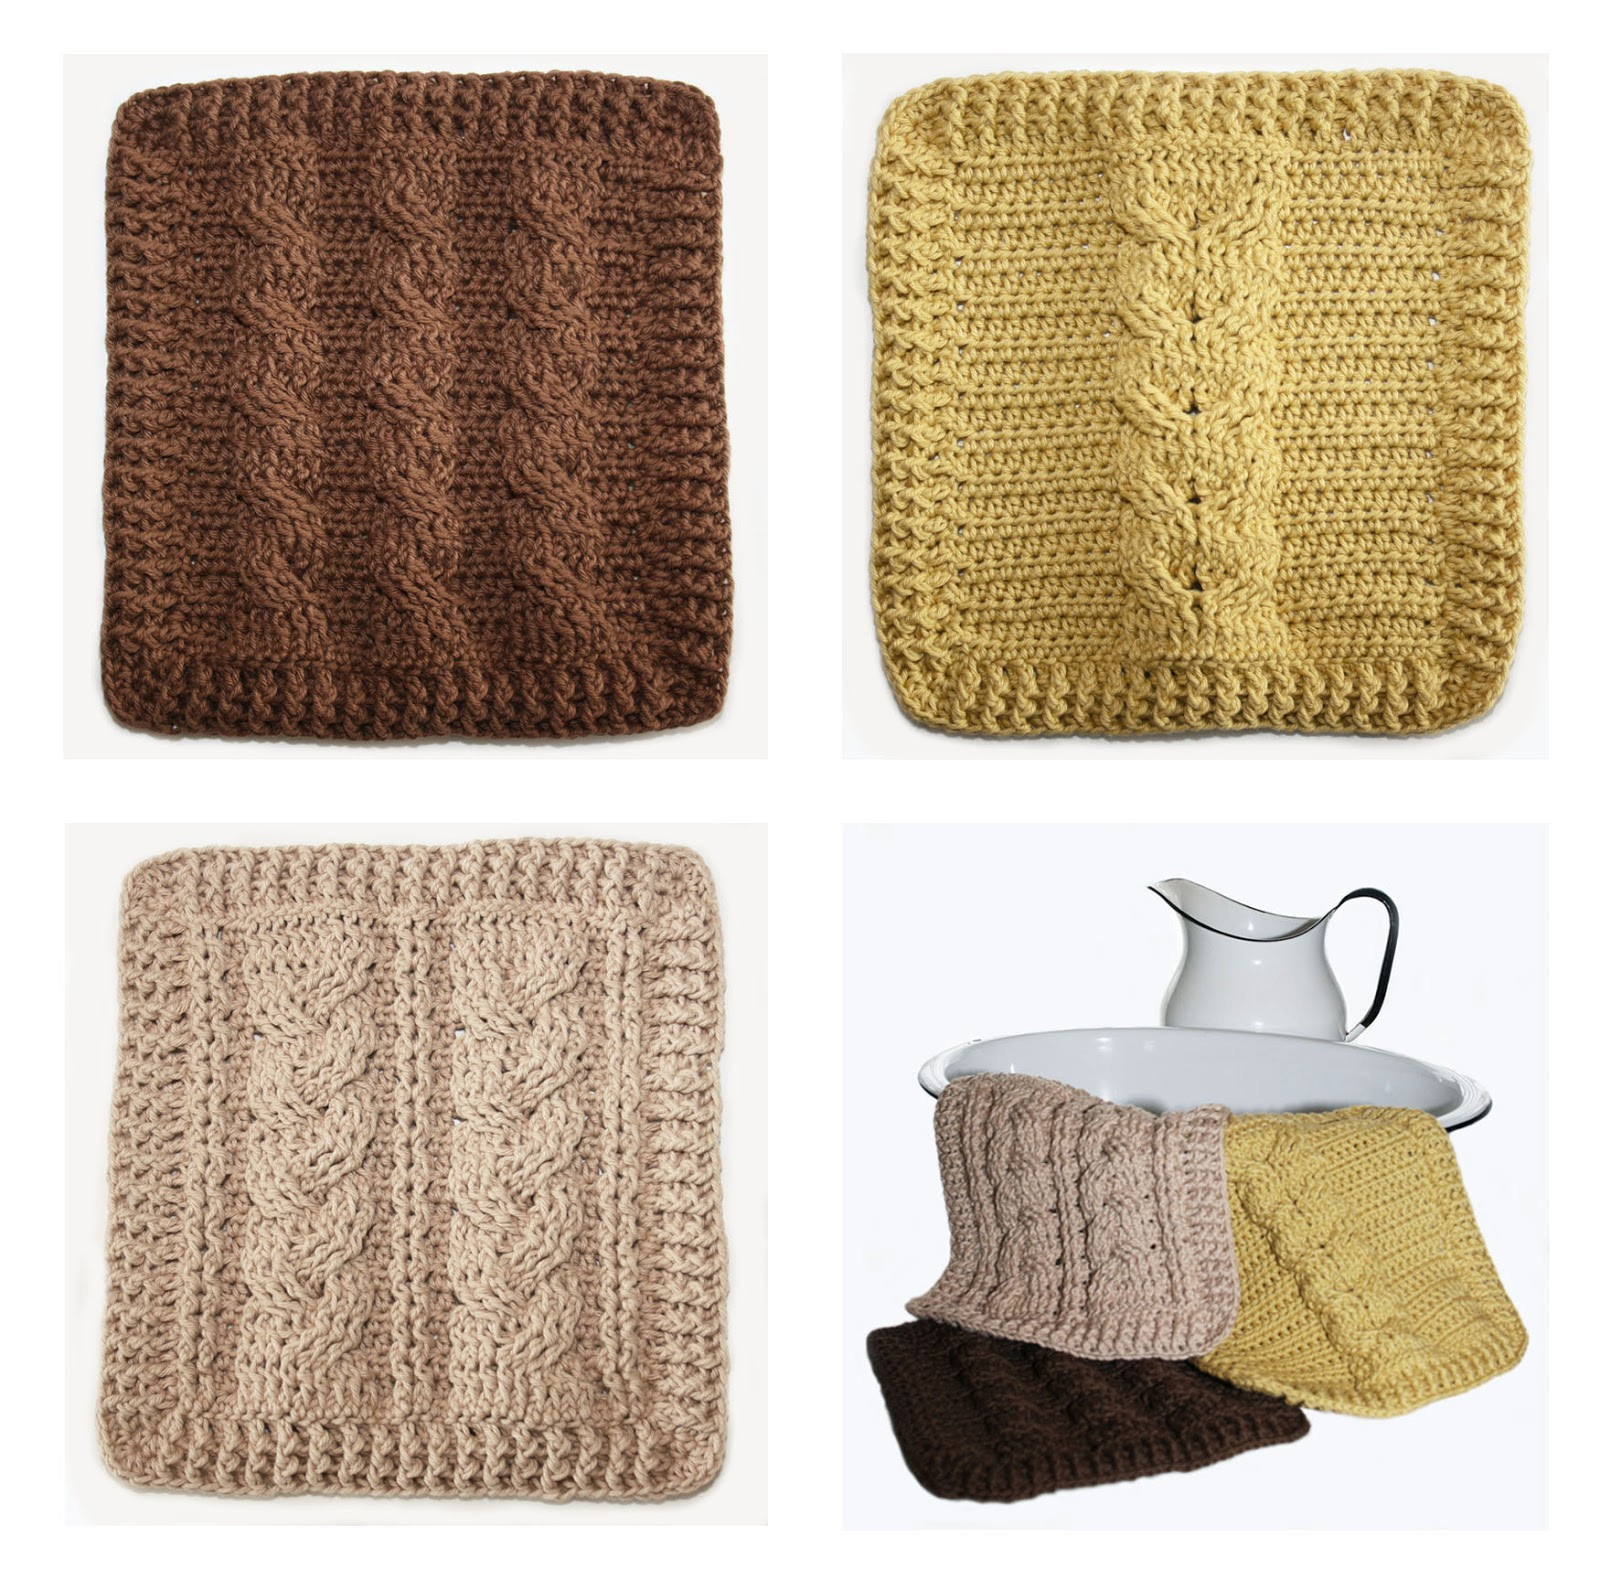 Cable Knit Dishcloth Pattern : knot sew cute design shop: new crochet pattern - cable sampler dishcloths by ...